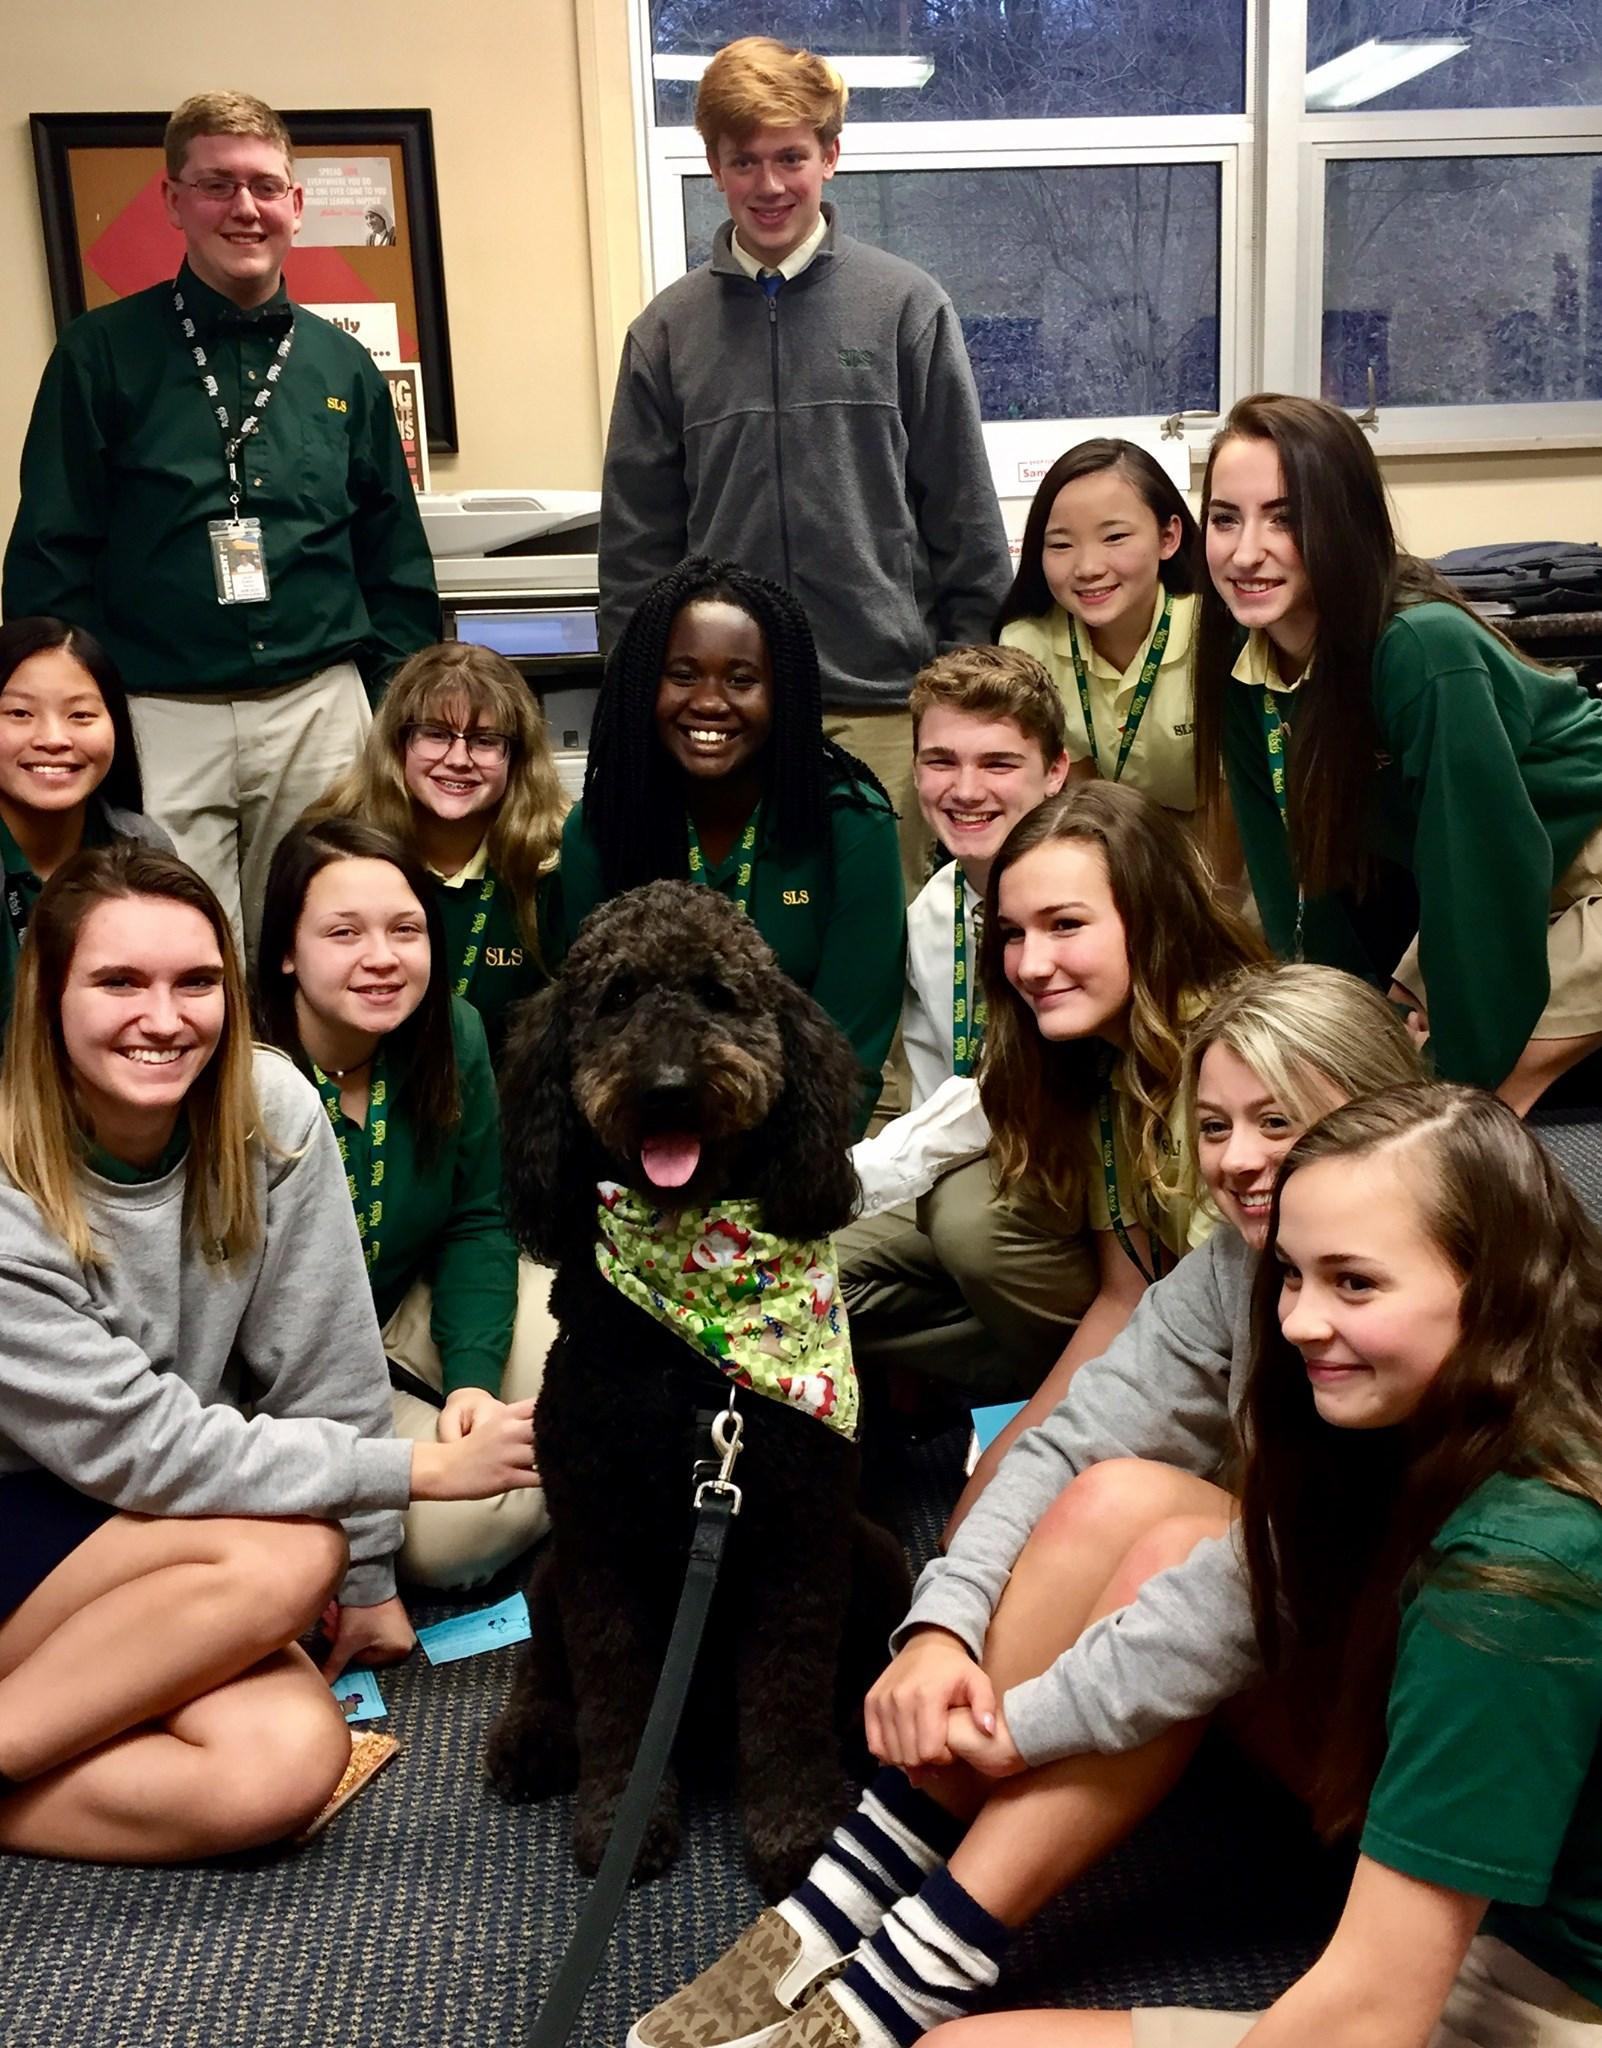 Students pose with therapy dog that Student Council arranged to bring